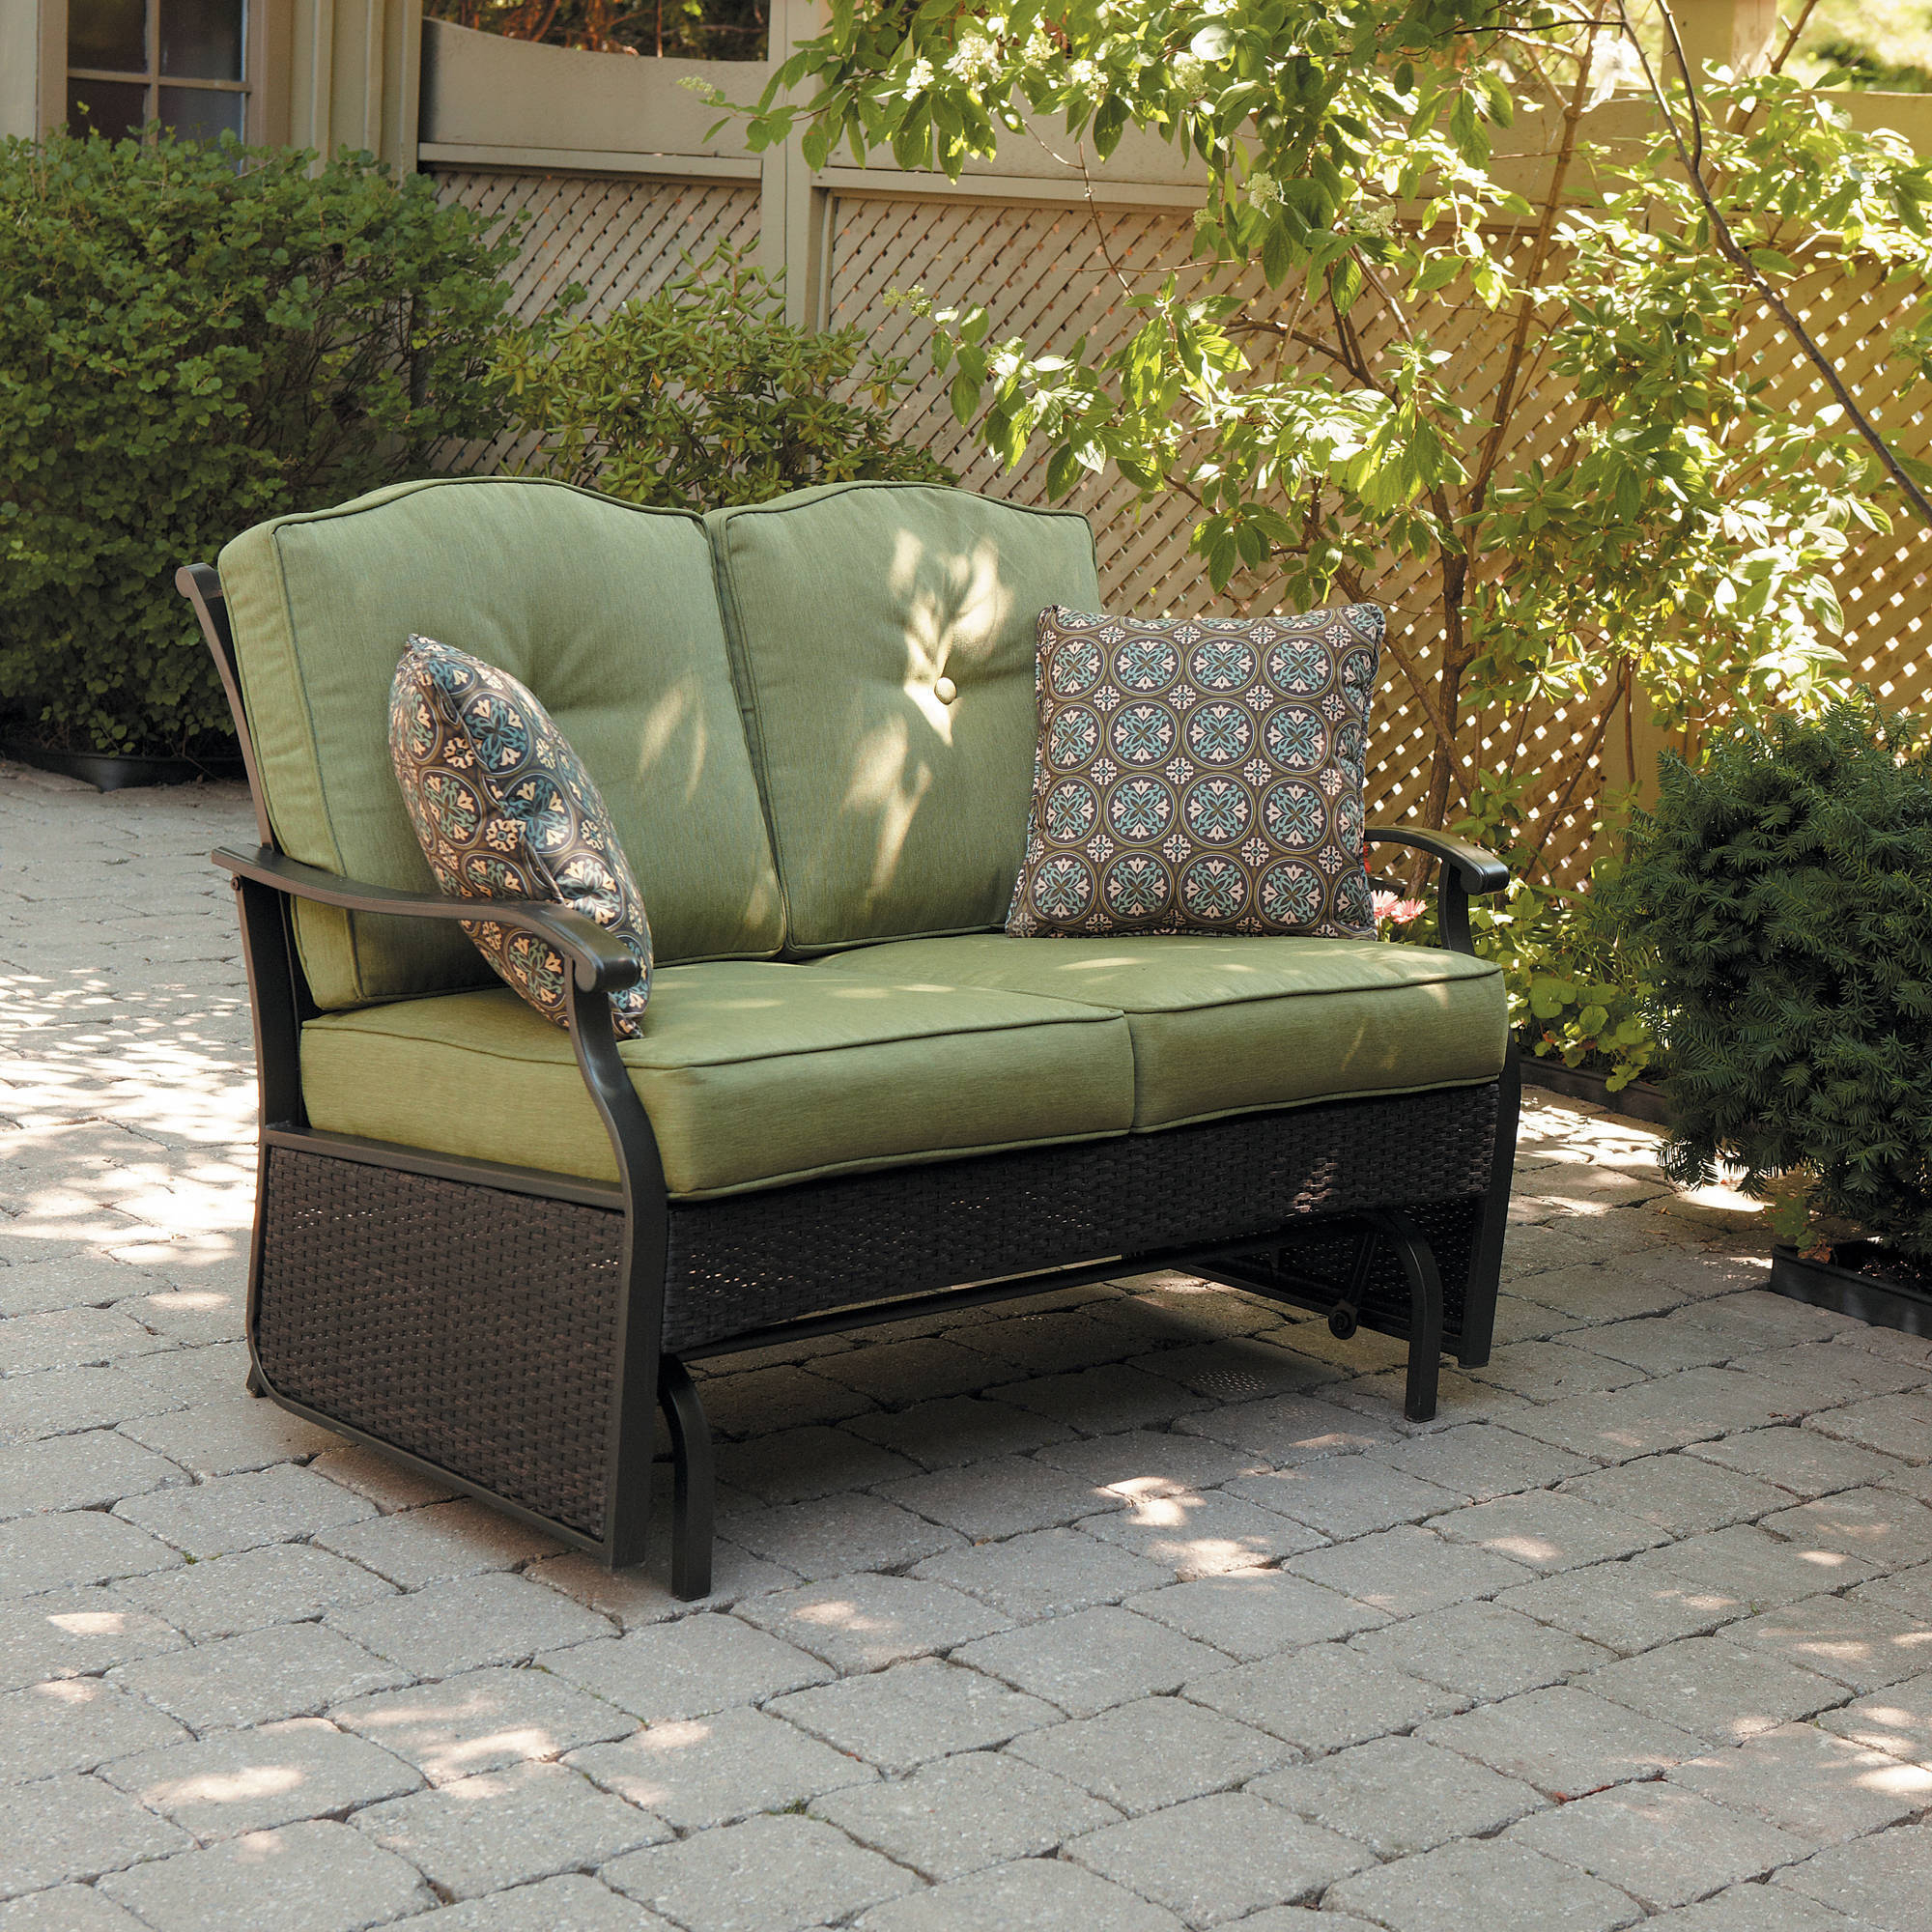 Most Current Better Homes & Gardens Providence 2 Person Outdoor Glider Loveseat –  Walmart With Regard To Outdoor Patio Swing Glider Bench Chair S (View 7 of 25)